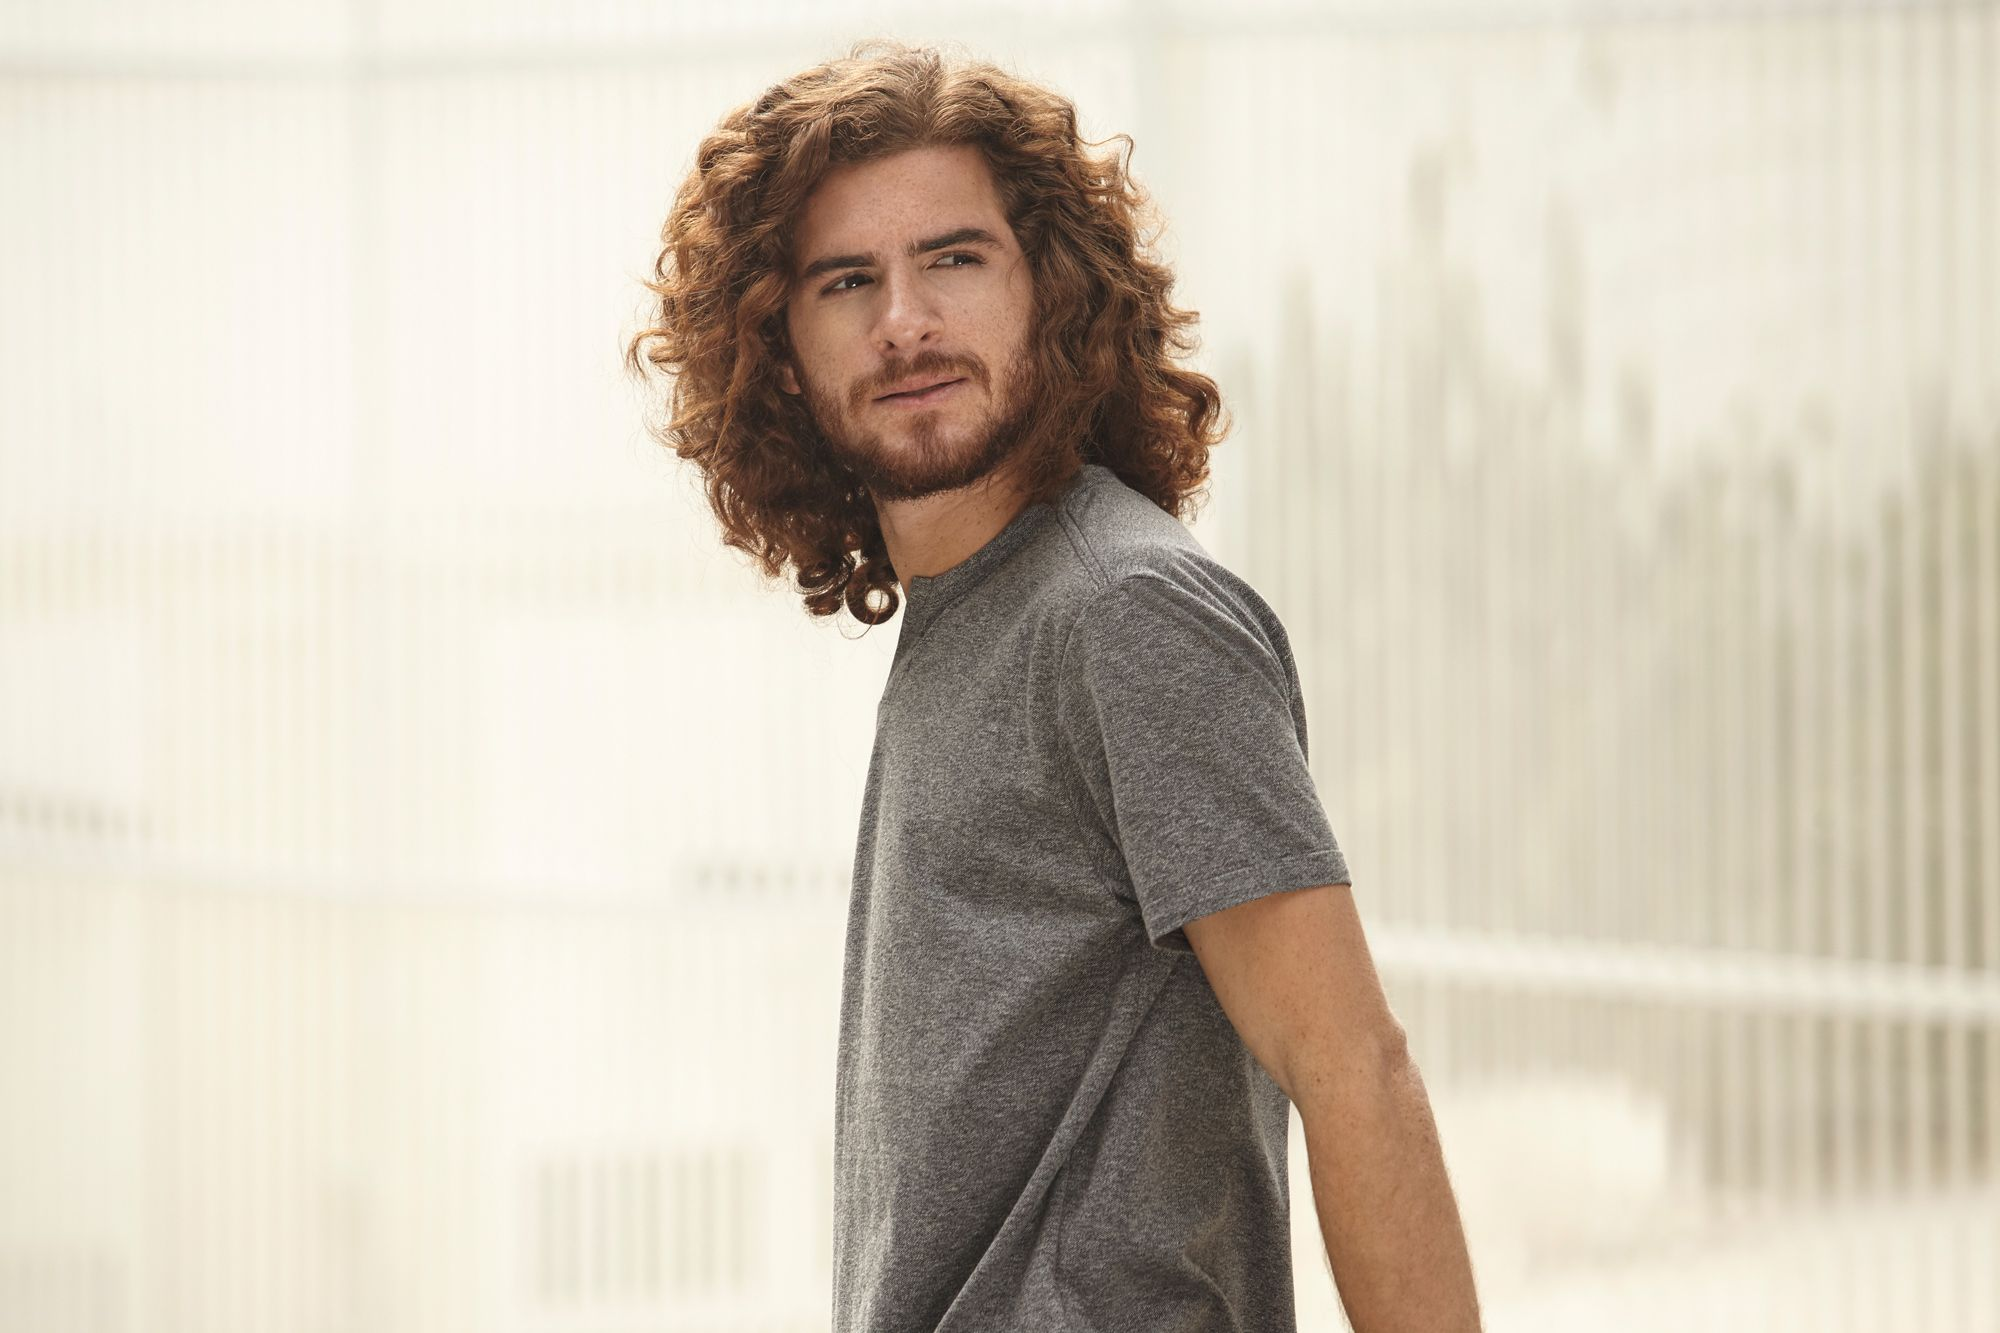 Haircuts For Thick Hair include thick and curly styles.